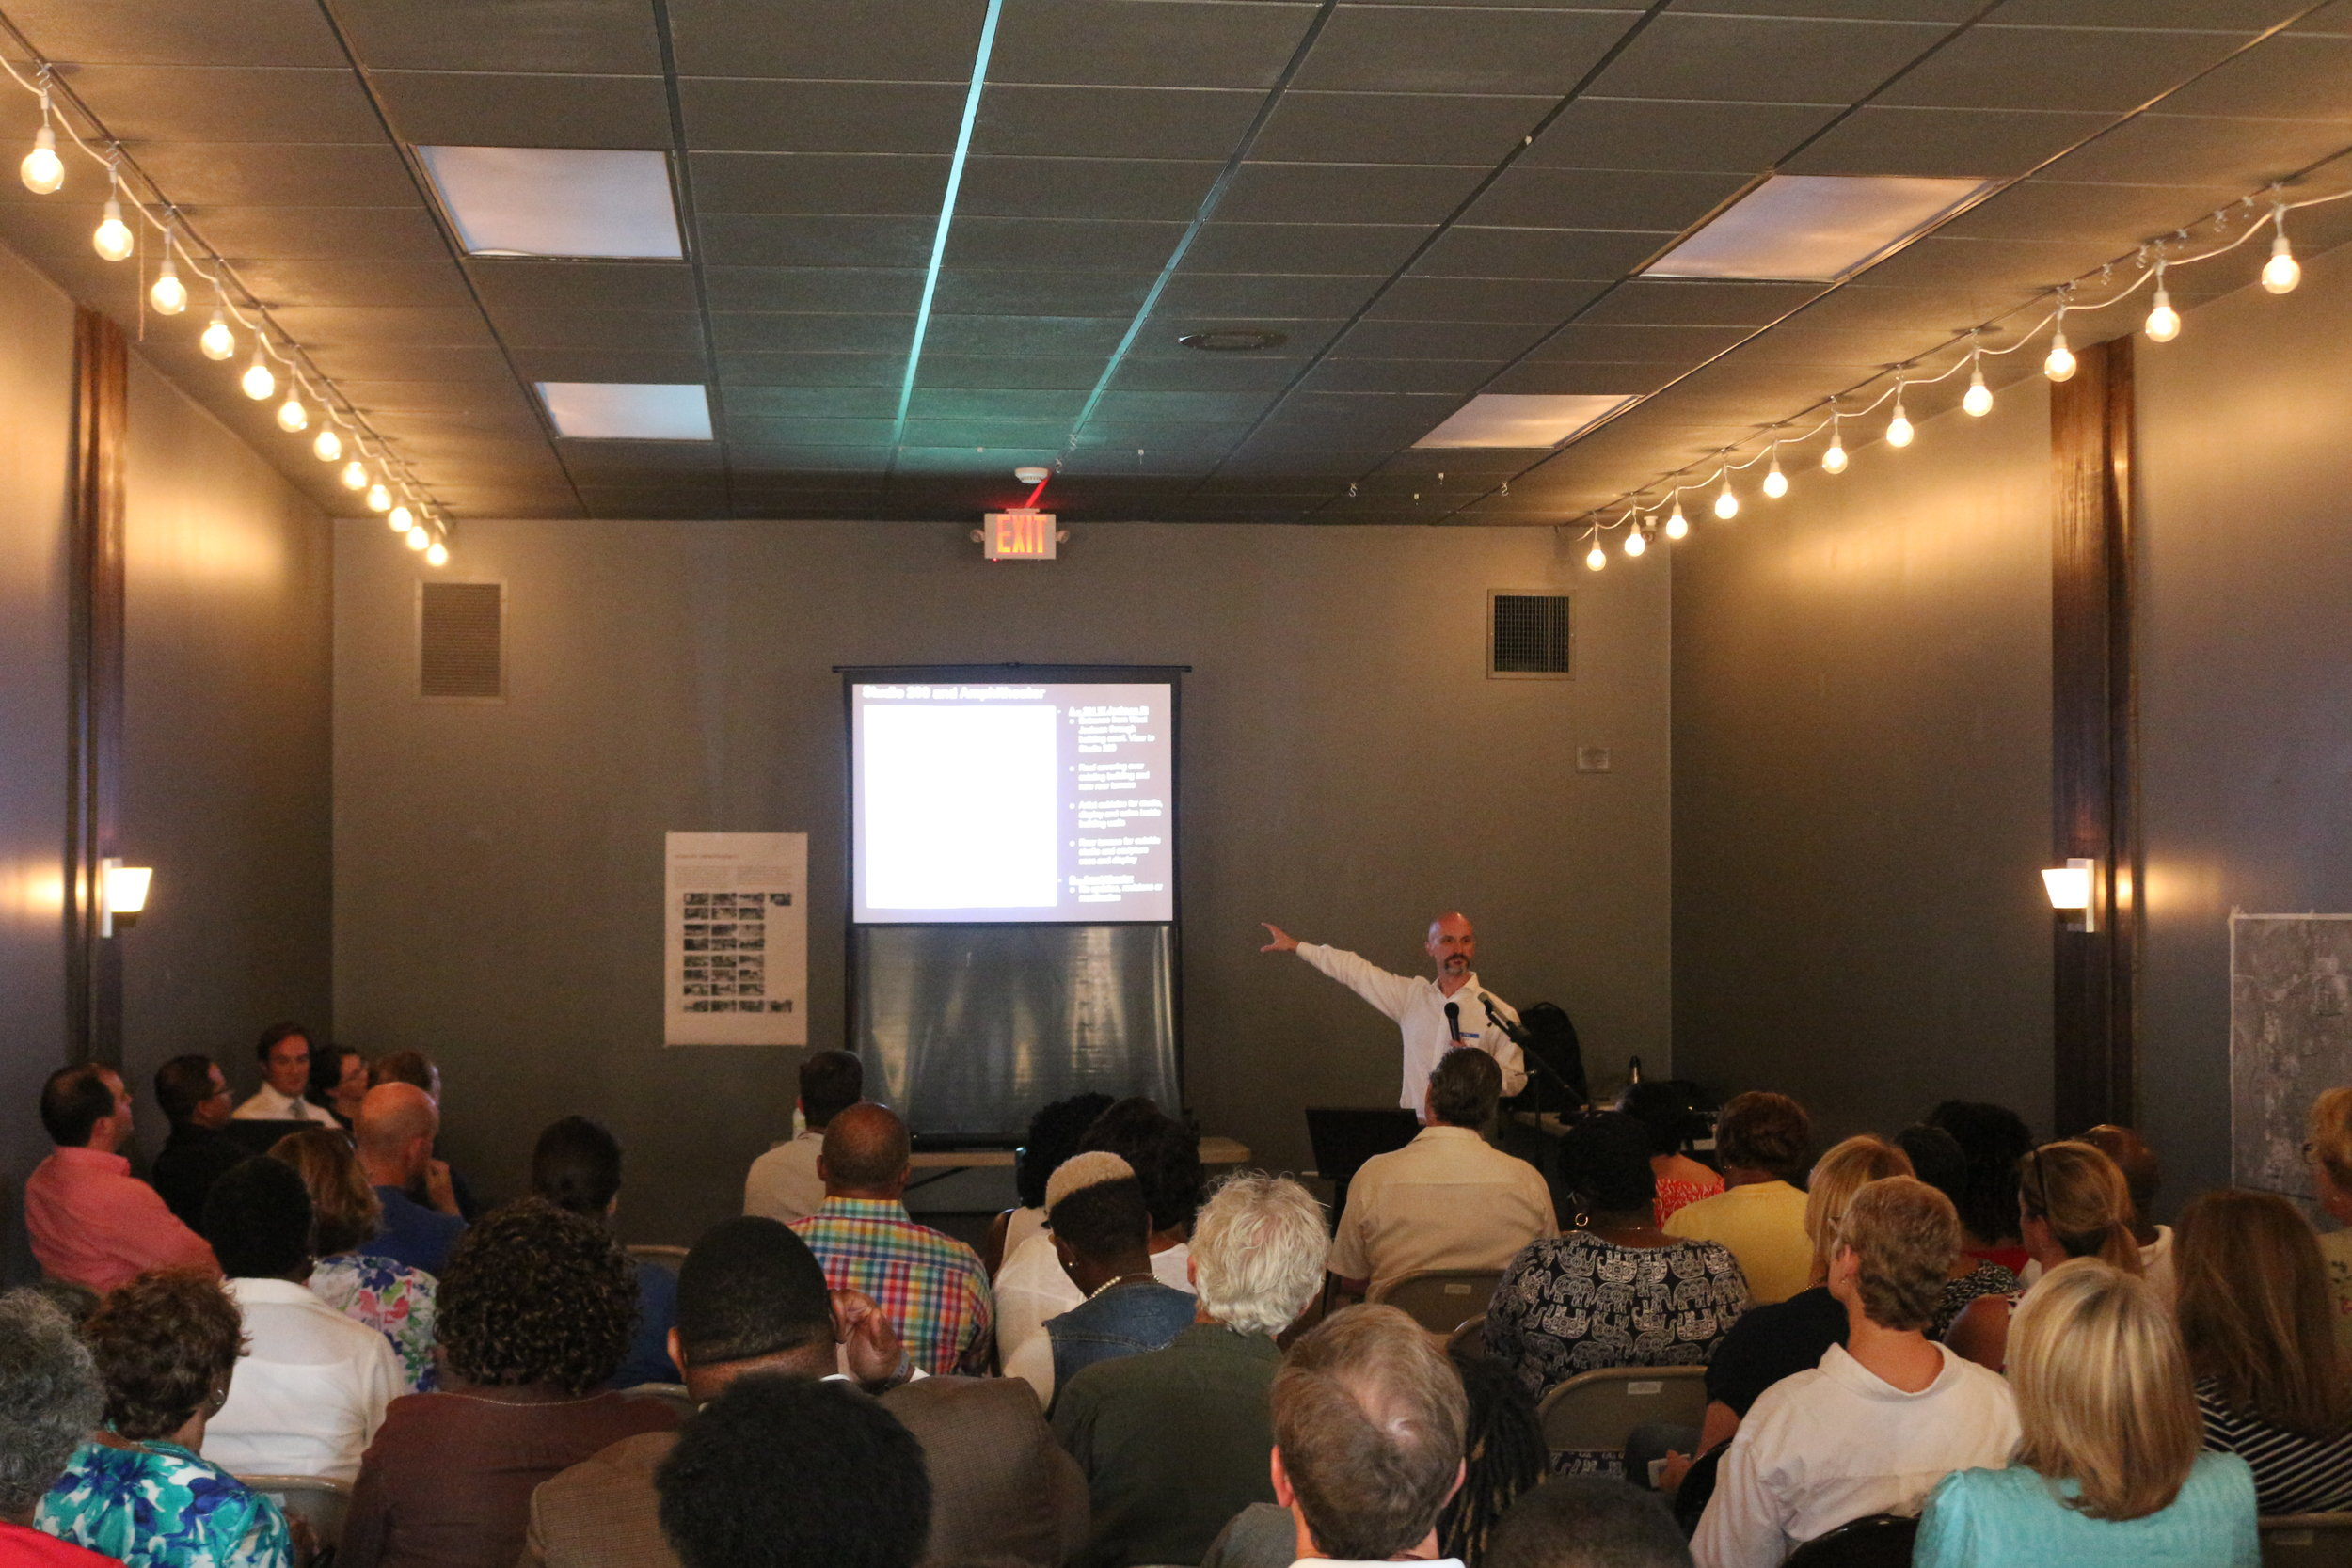 The consultant team presented subjects such as economic opportunity at the Work in Progress presentation.